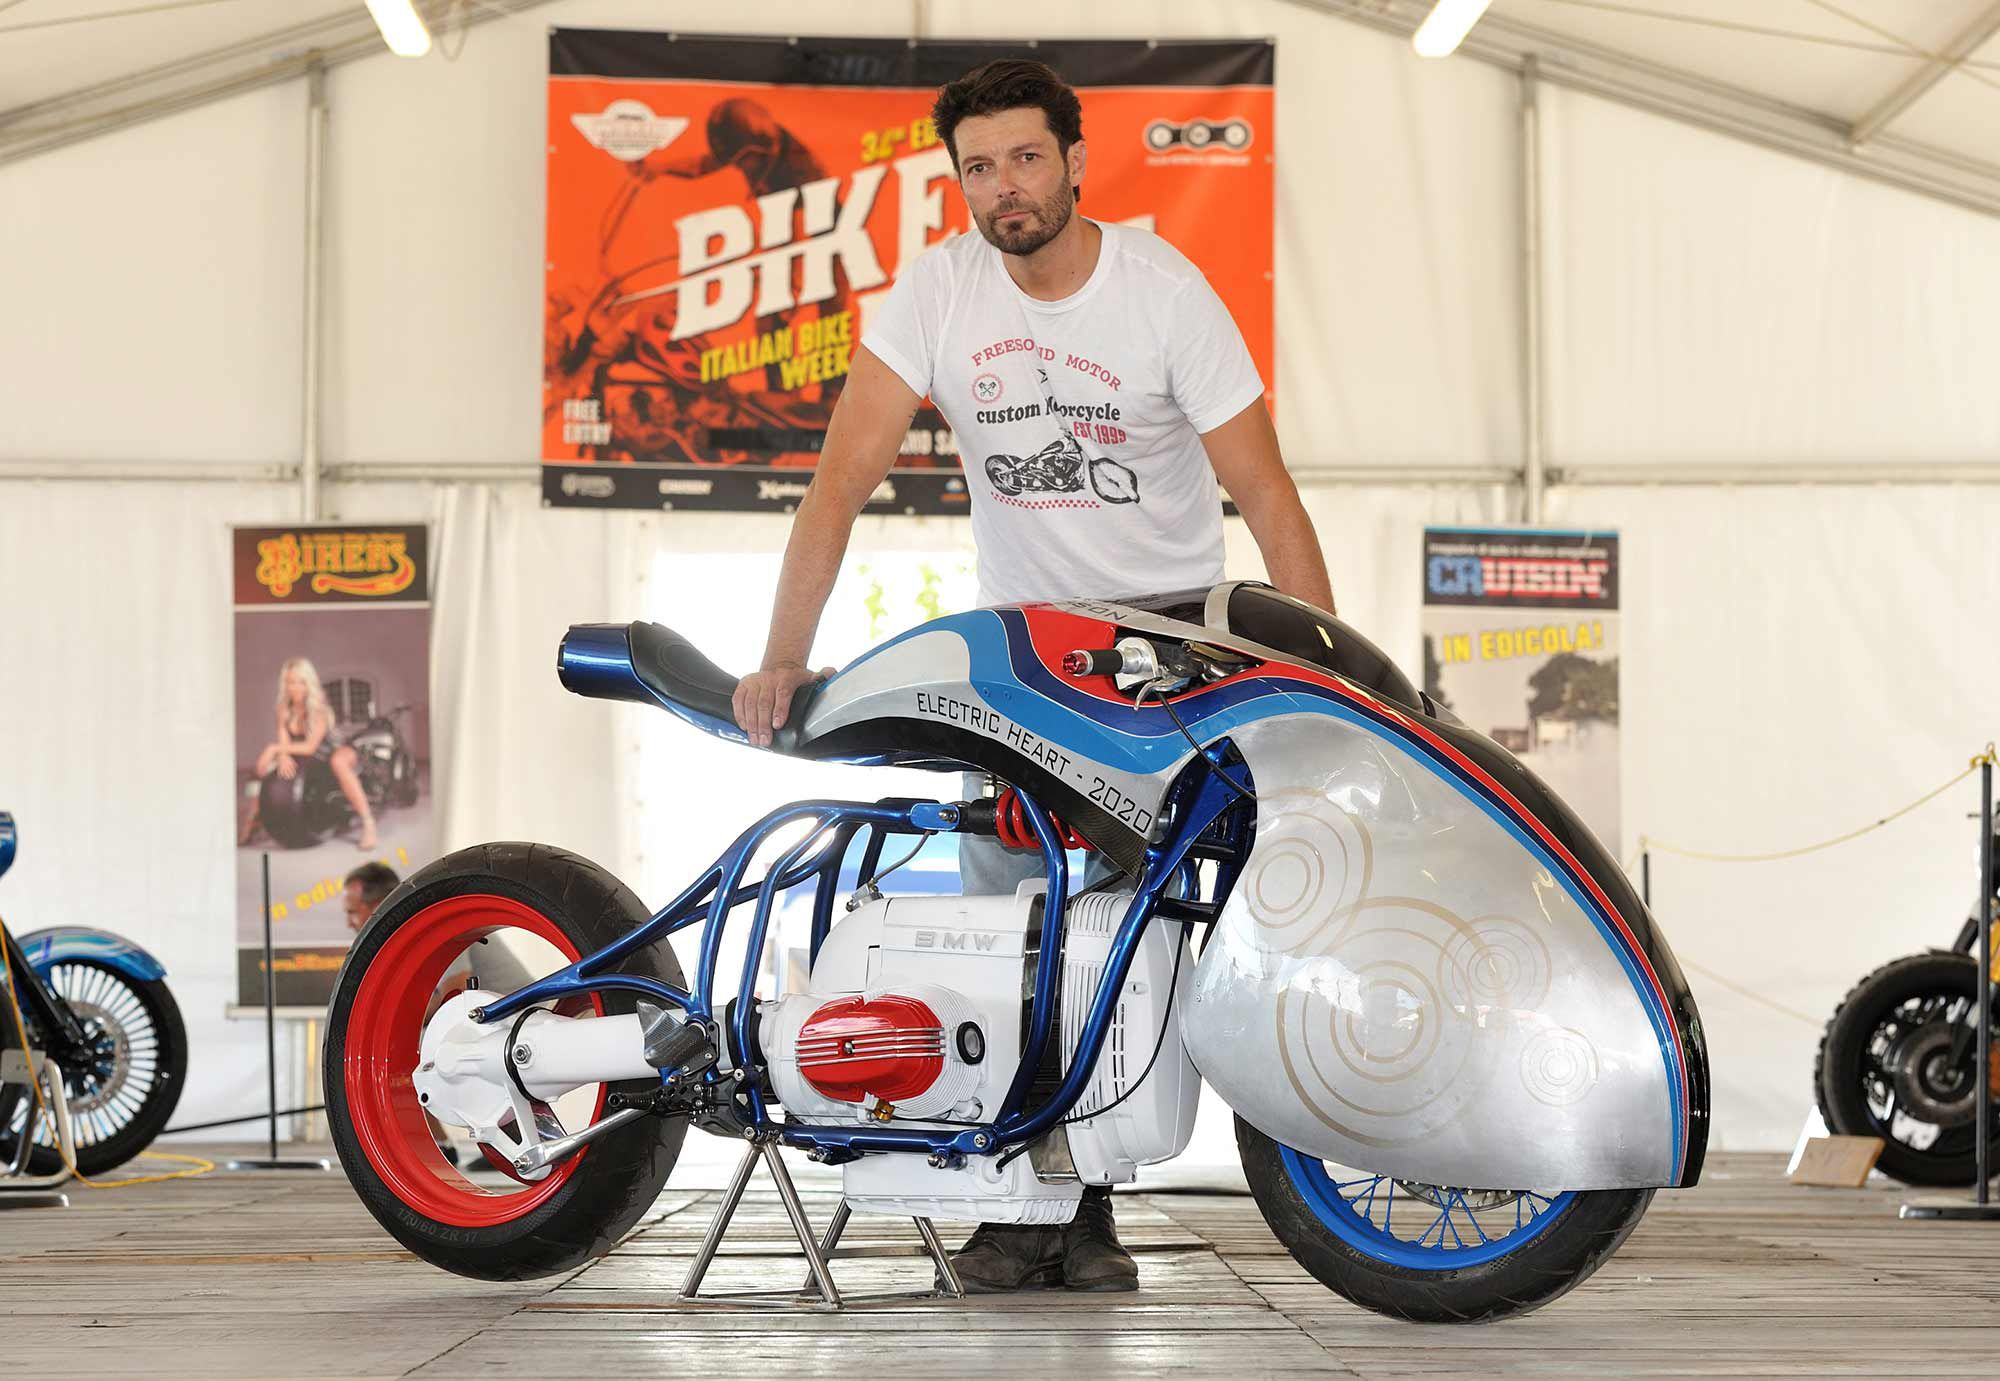 An electric BMW R65E build by Free Sound Customs also placed at the 2020 AMD Show at last year's Biker Fest.